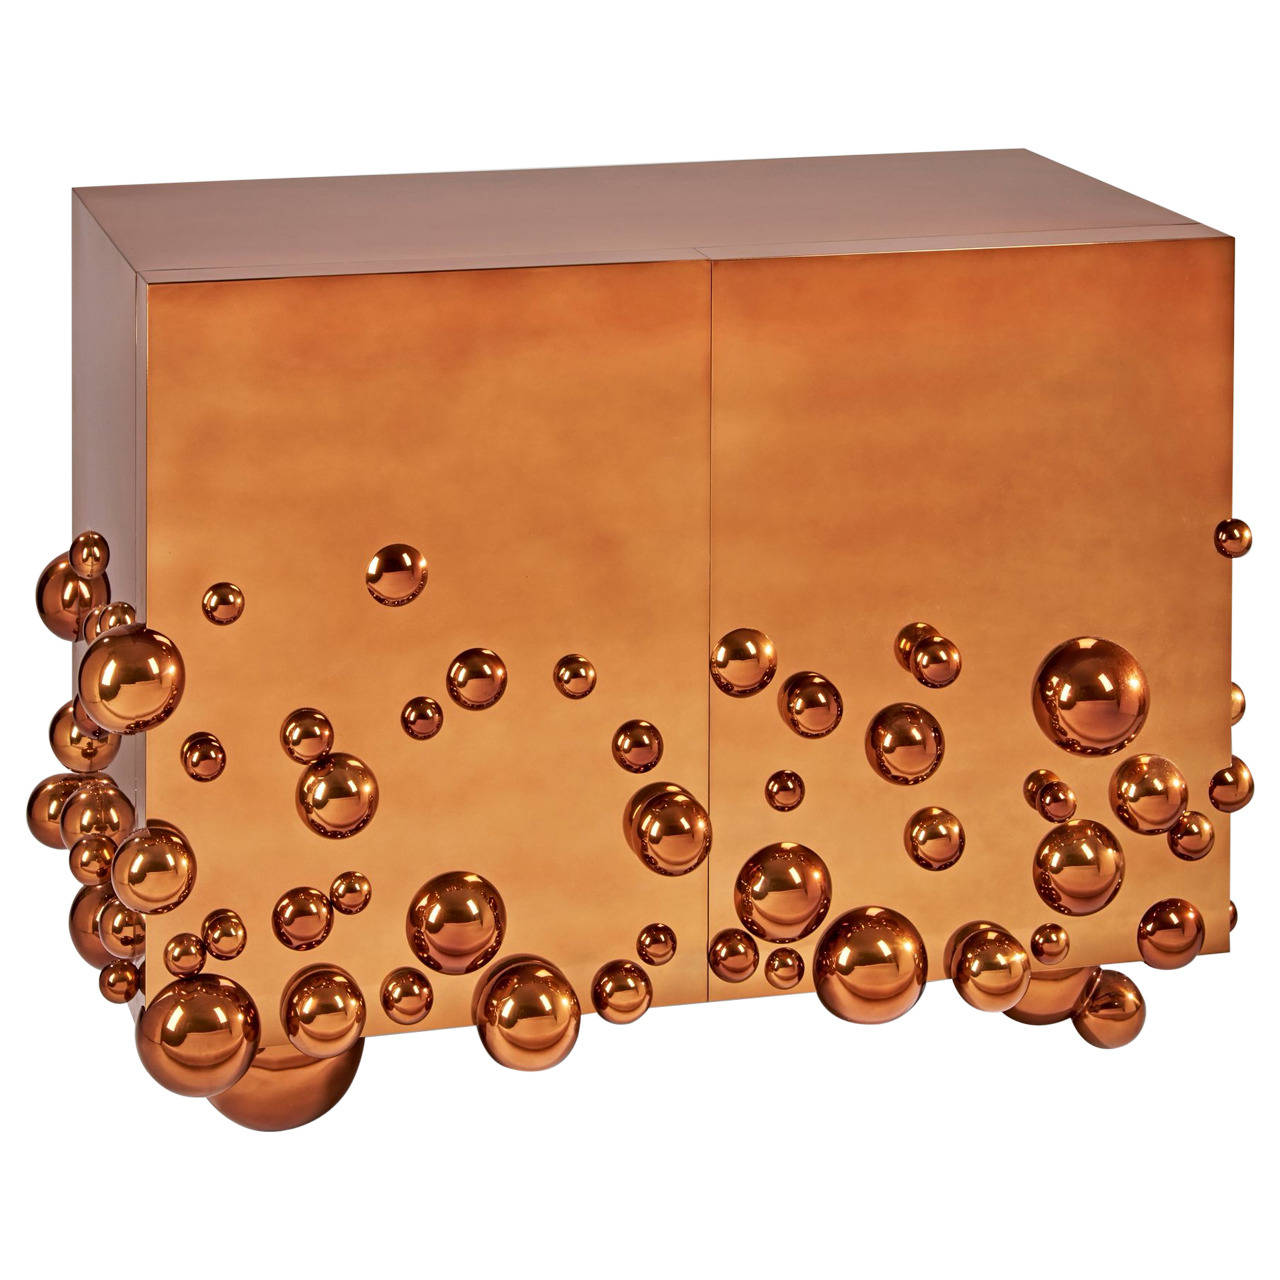 8 Beautiful But Weird Buffets and Cabinets Hubert Le Gall 8 Beautiful But Weird Buffets and Cabinets by Hubert Le Gall 8 Beautiful But Weird Buffets and Cabinets by Hubert Le Gall 1